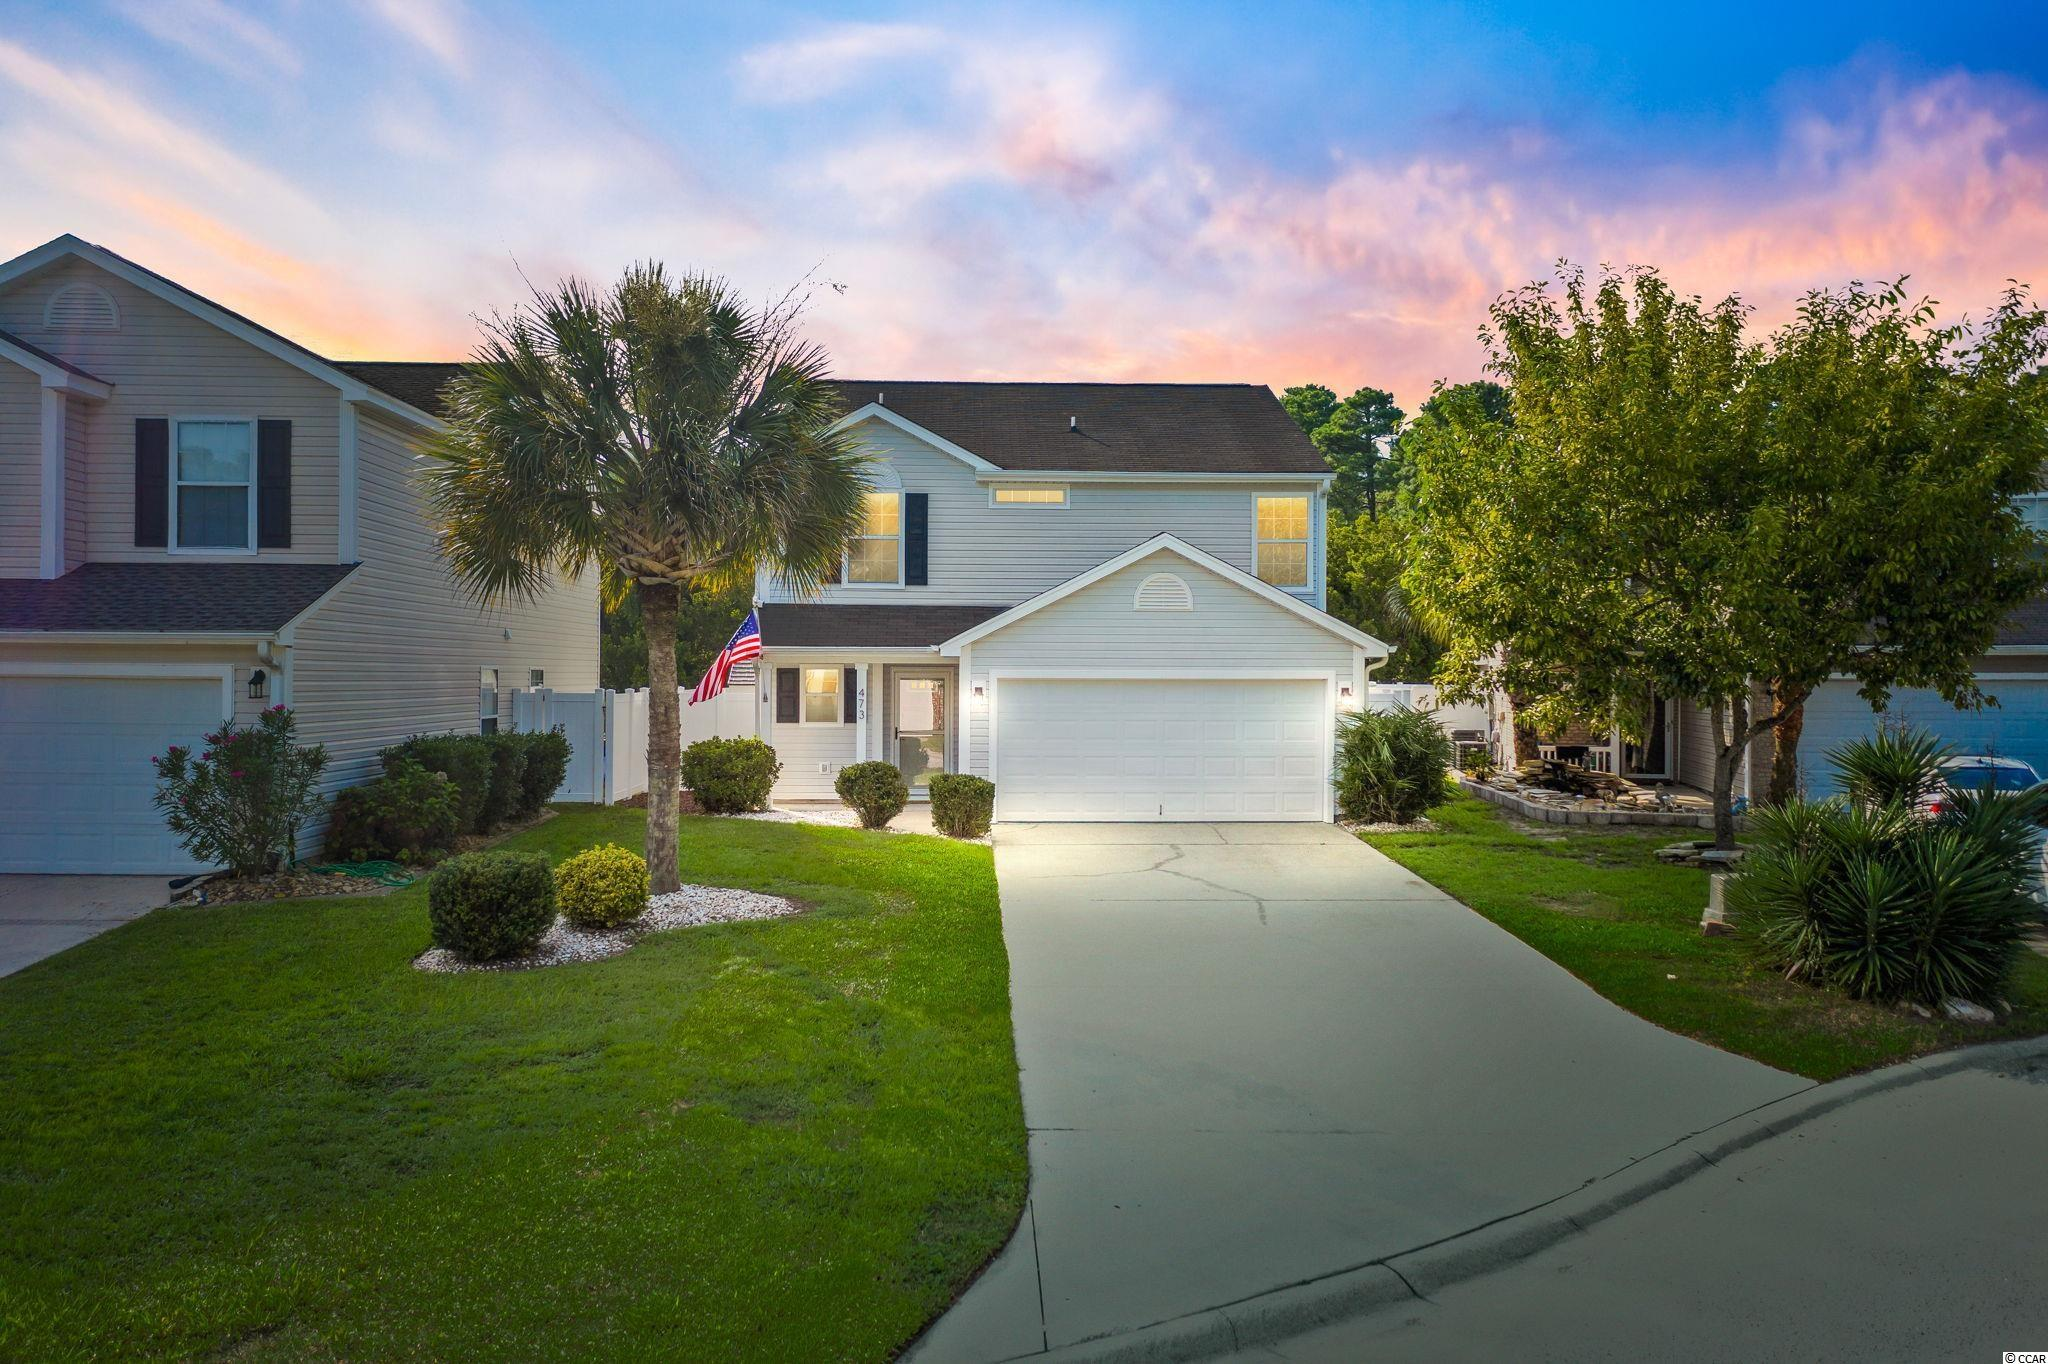 Look no further! This turn key 3 bedroom 2.5 bath home is situated on a cul-de-sac in the highly sought after community of Avalon in Carolina Forest.  The main level features LVP flooring throughout and a fully updated kitchen with new white cabinets, granite countertops, stainless steel appliances, and a large pantry.  The second floor has brand new carpet and the master bedroom with a walk-in closet and en suite bathroom.  Two additional spacious bedrooms, full bathroom, bonus loft area, and laundry are also located upstairs.  The peaceful backyard is fully fenced with an extended patio and is perfect for relaxing or entertaining.  Being in Avalon, not only do you have access to an amazing community pool, club house, playground, grilling station, and picnic area but you are also in a spectacular location. You are only minutes to the beach, shopping, restaurants, and so much more.  Schedule your showing today because this house will not last long!